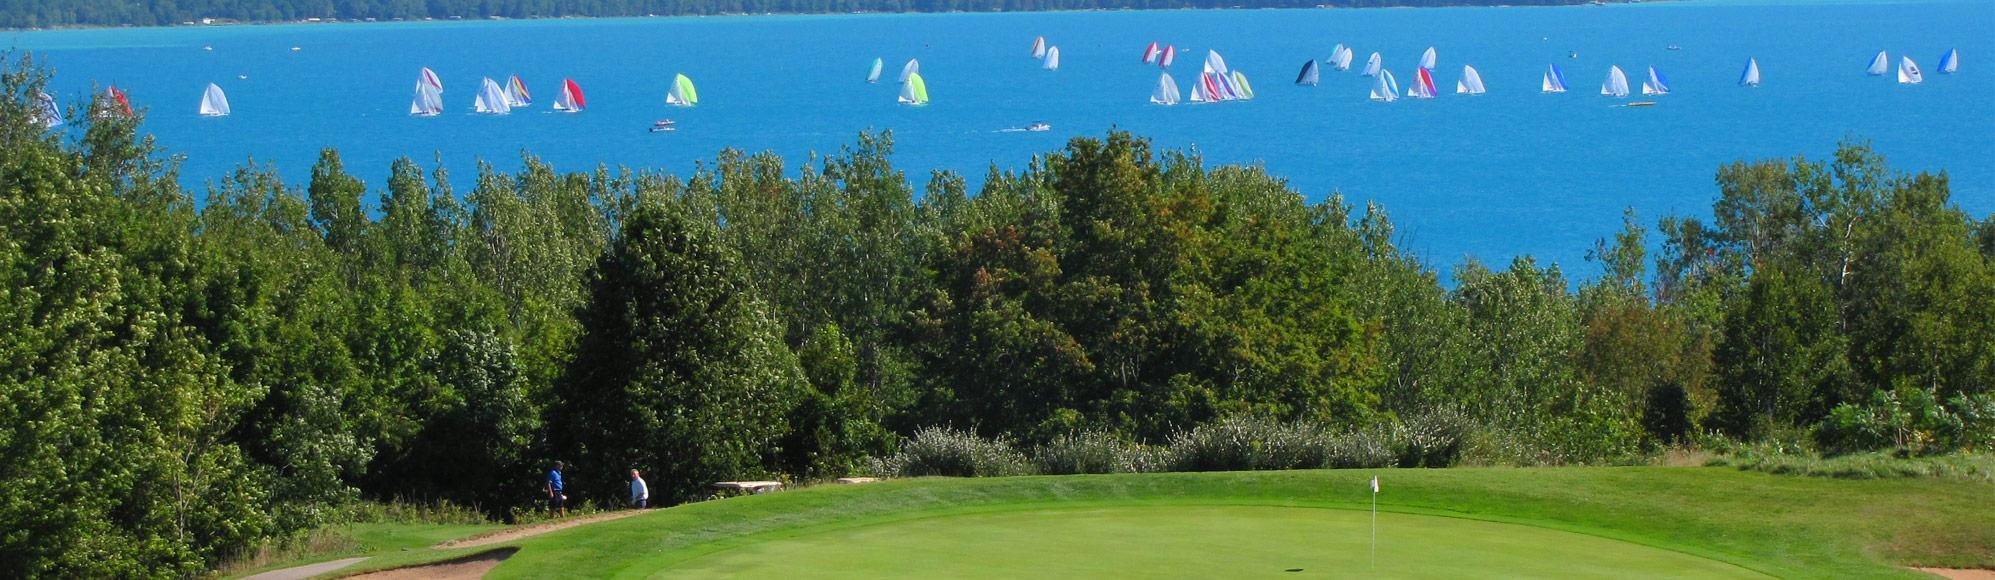 golf resort in Northern Michigan